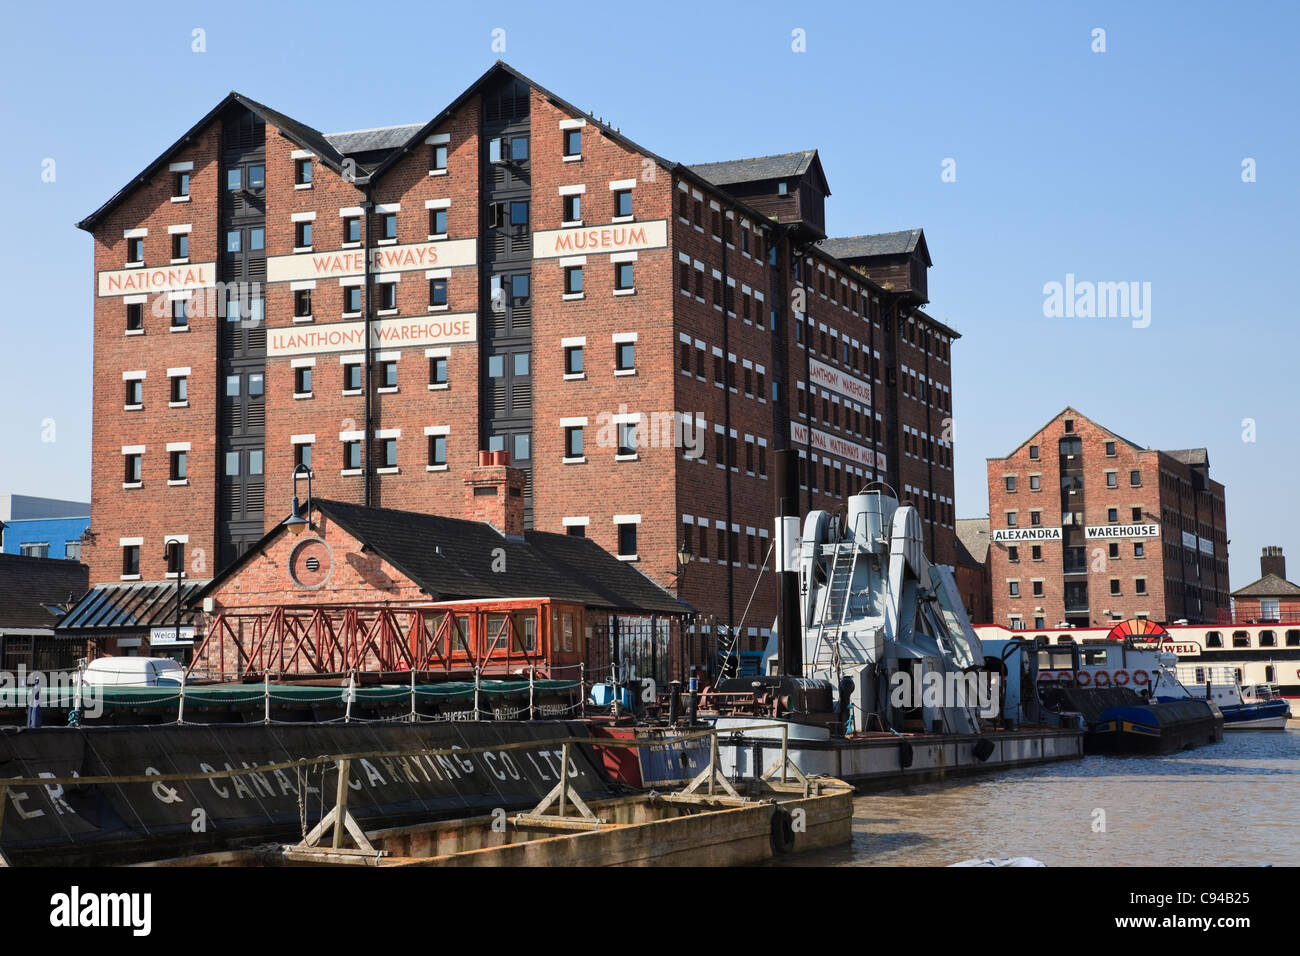 Gloucester Docks, Gloucestershire, England, UK. The National Waterways Museum in Llanthony Warehouse - Stock Image